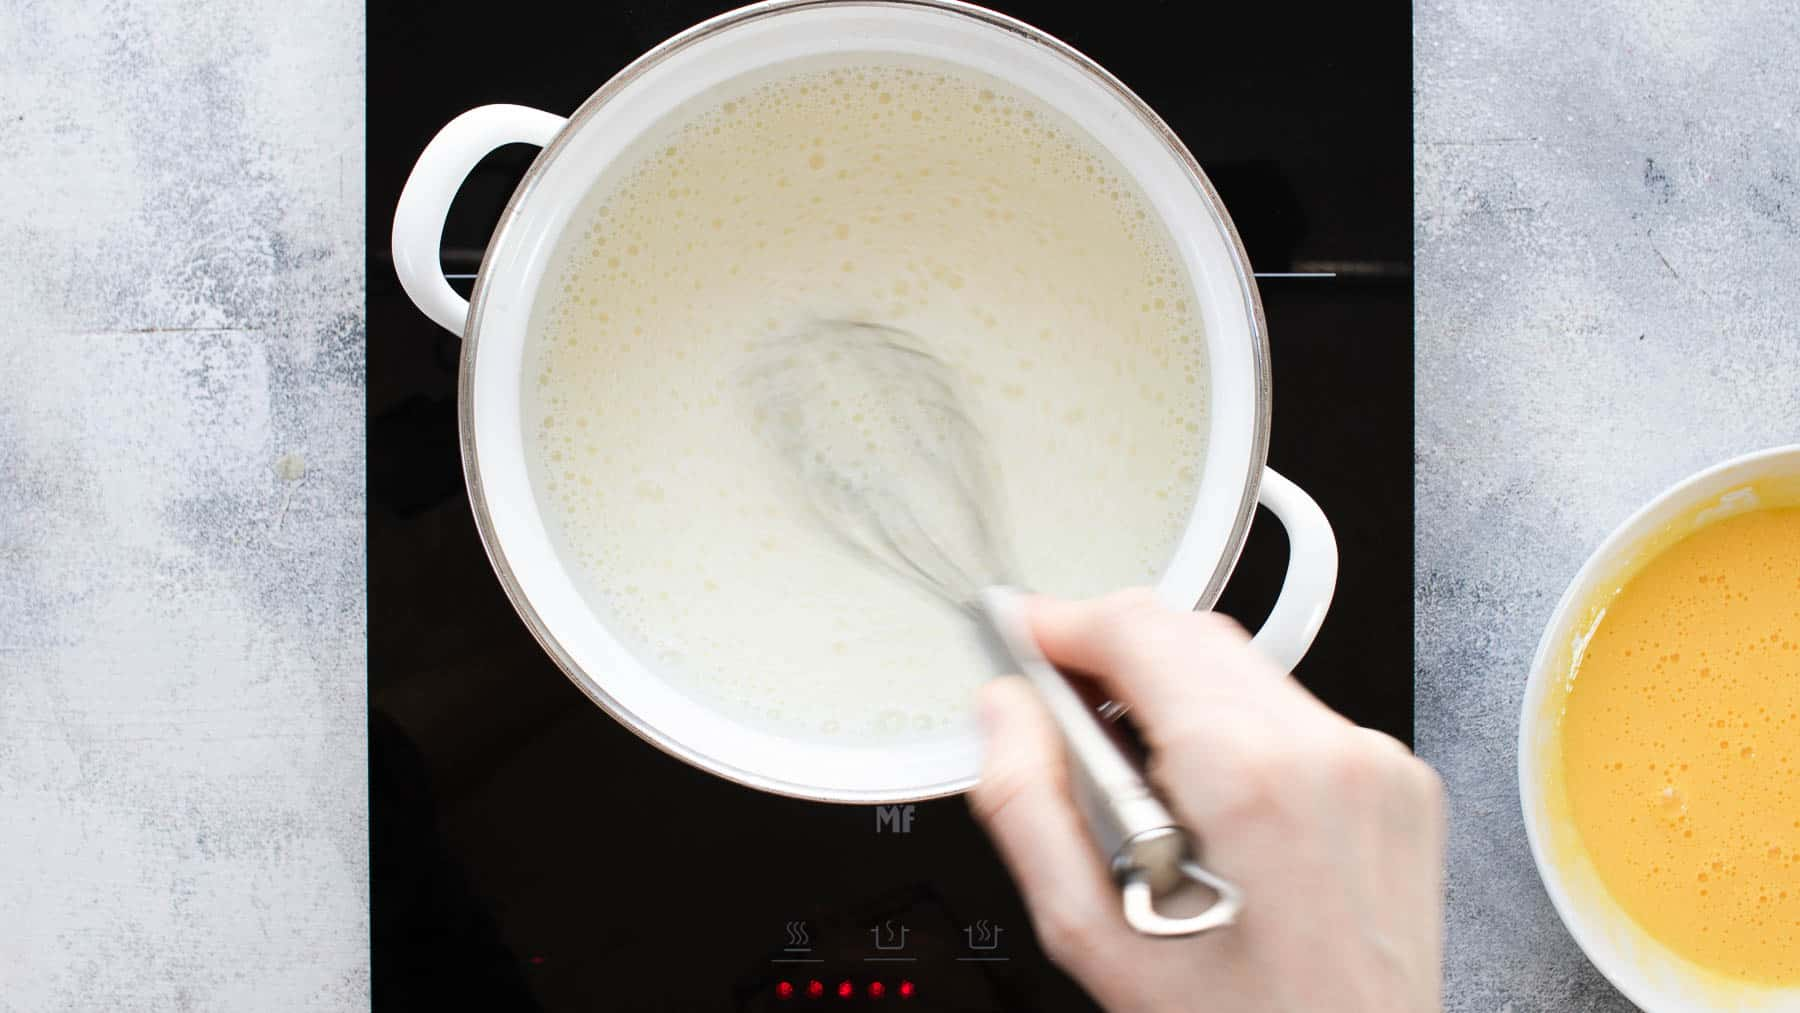 whisking liquid in a pan